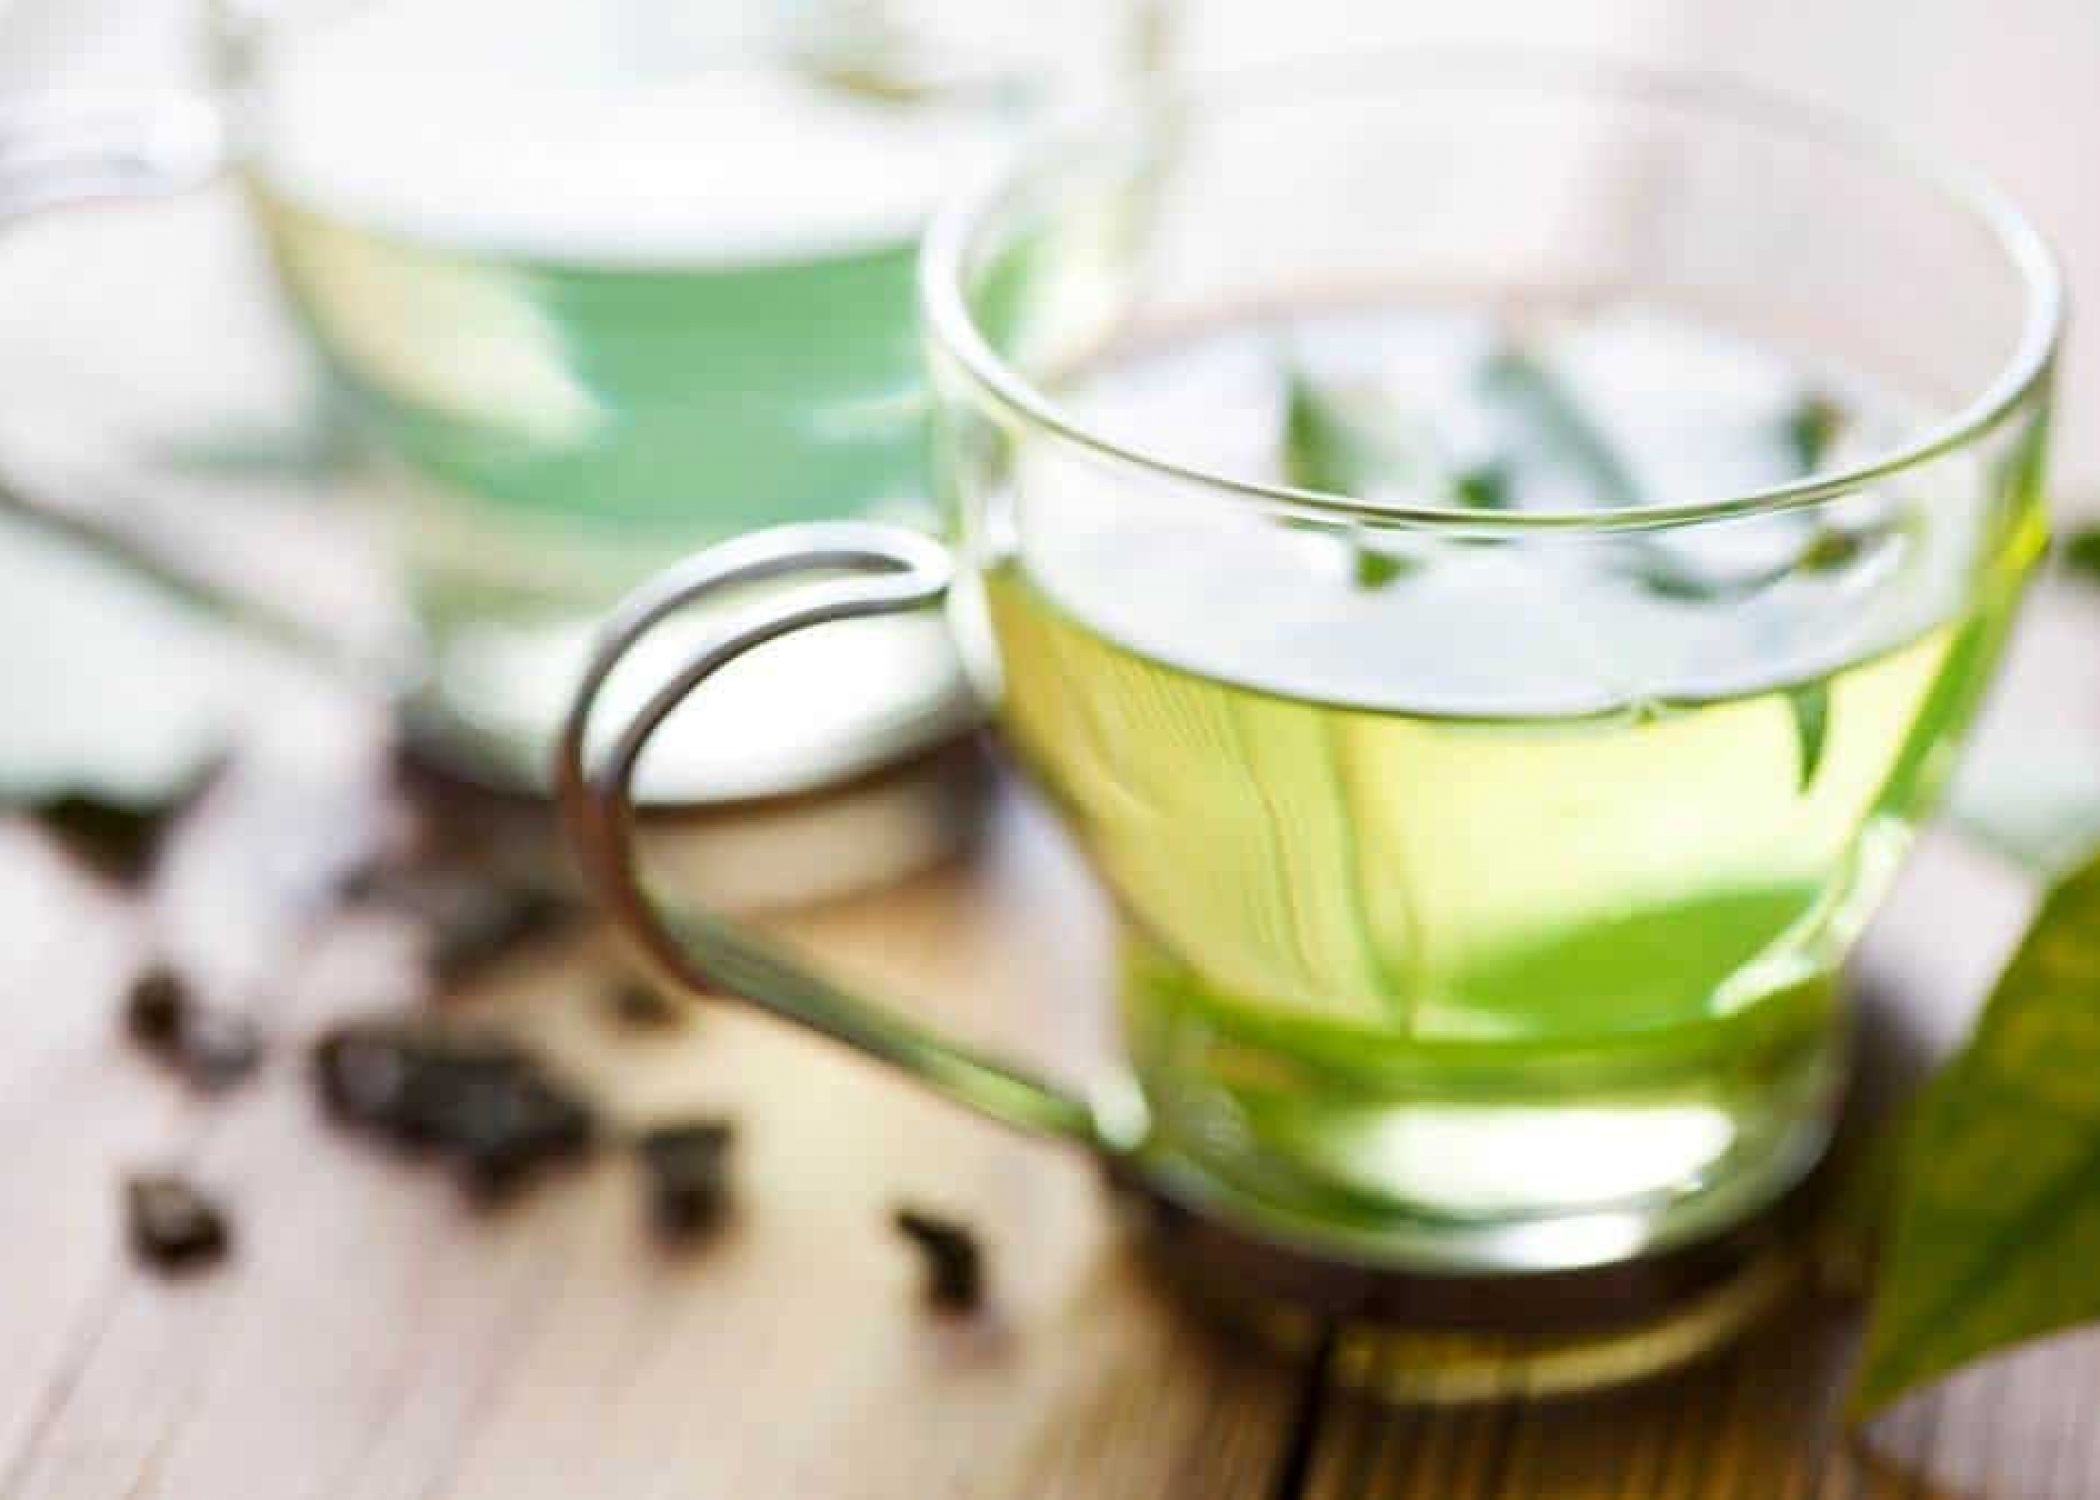 Is Green Tea Fermented?